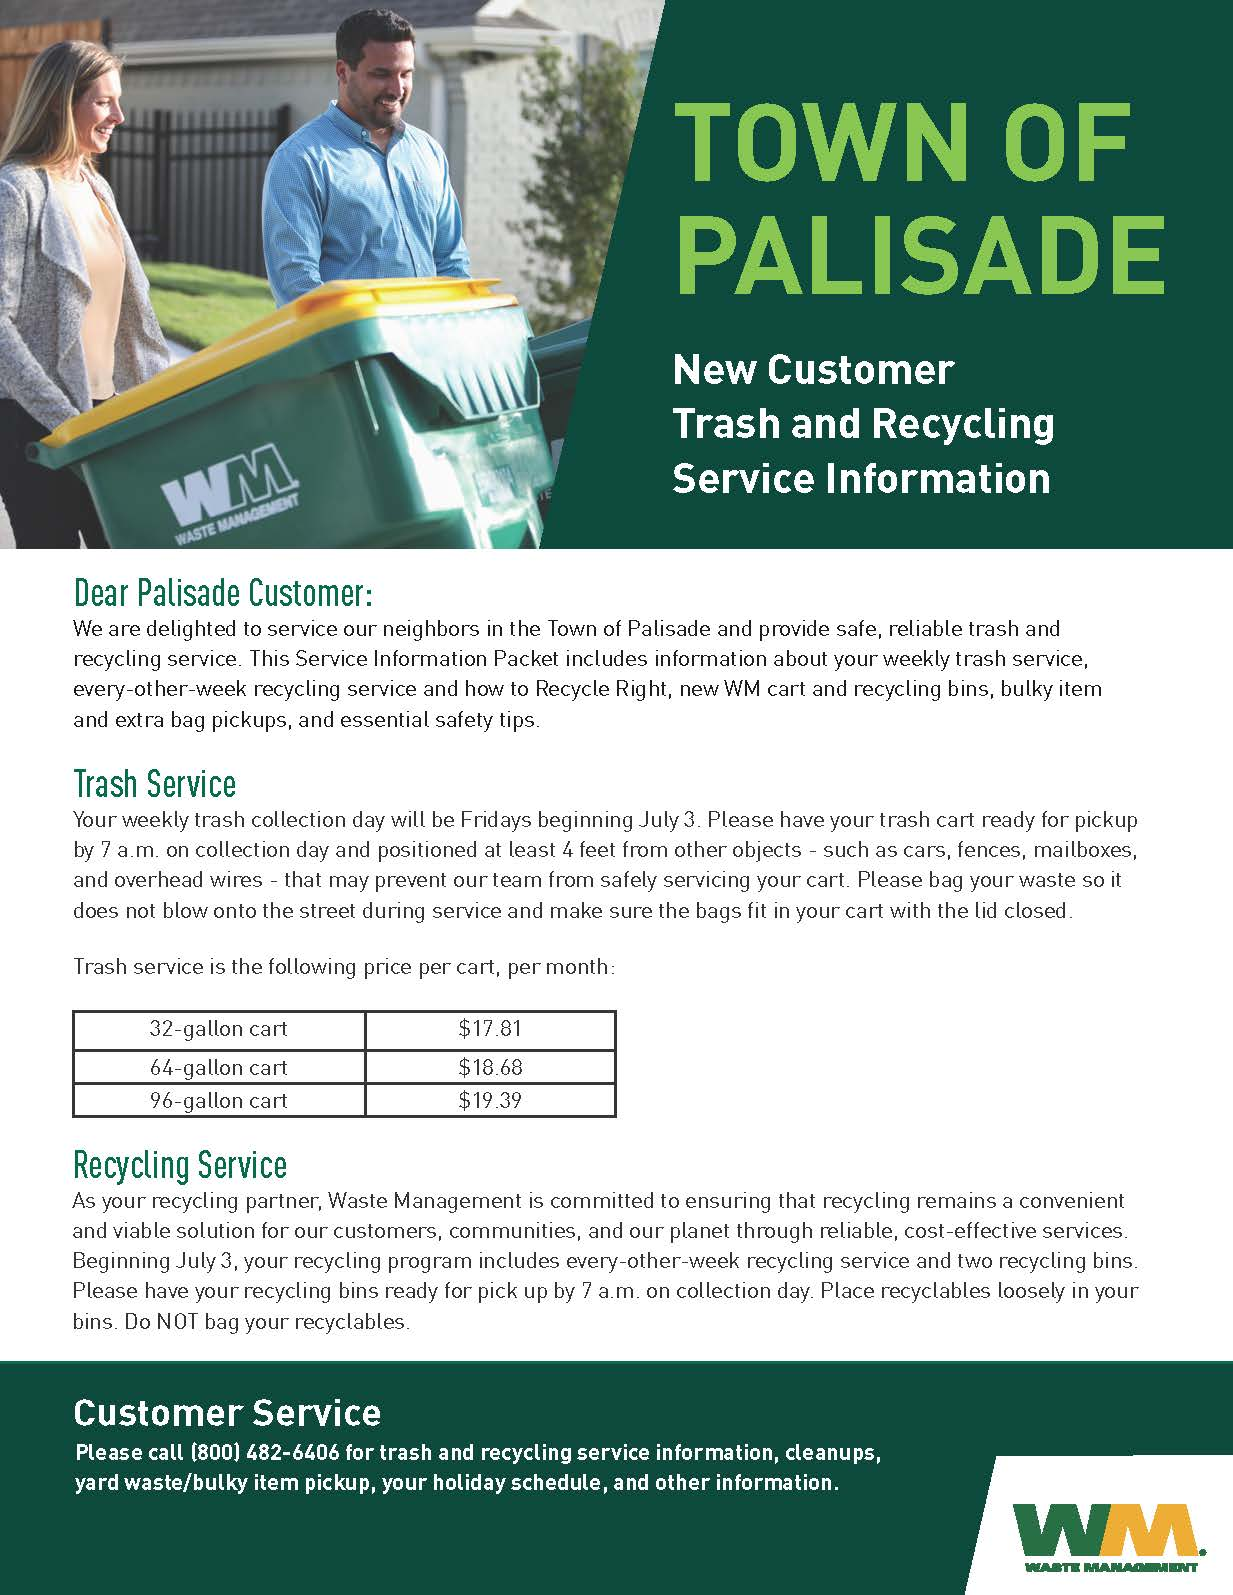 2020 Palisade New Customer Service Information Packet Waste Management Page 1